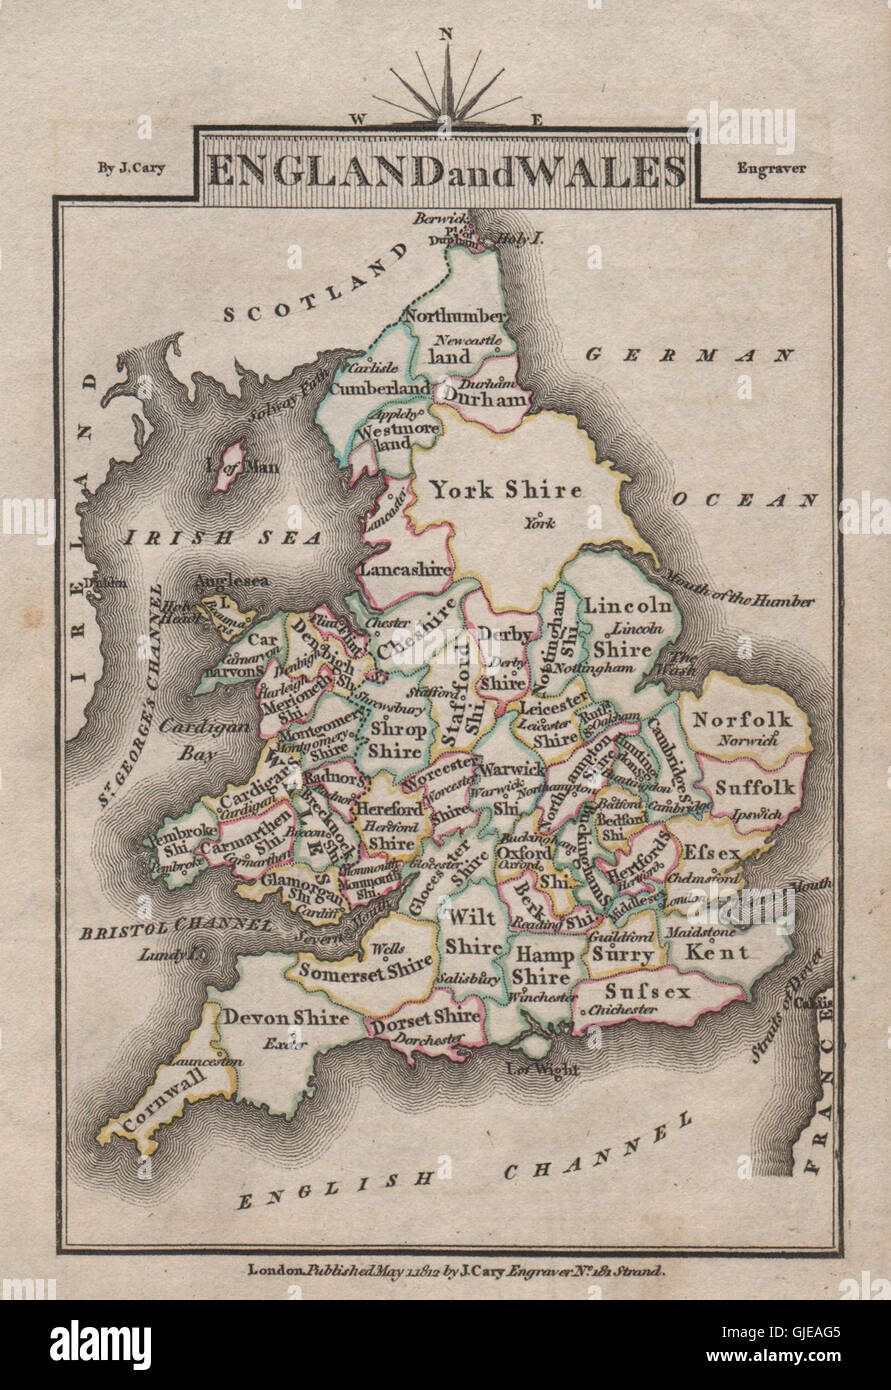 Map Of England To Colour.England And Wales By John Cary Miniature Antique Map Original